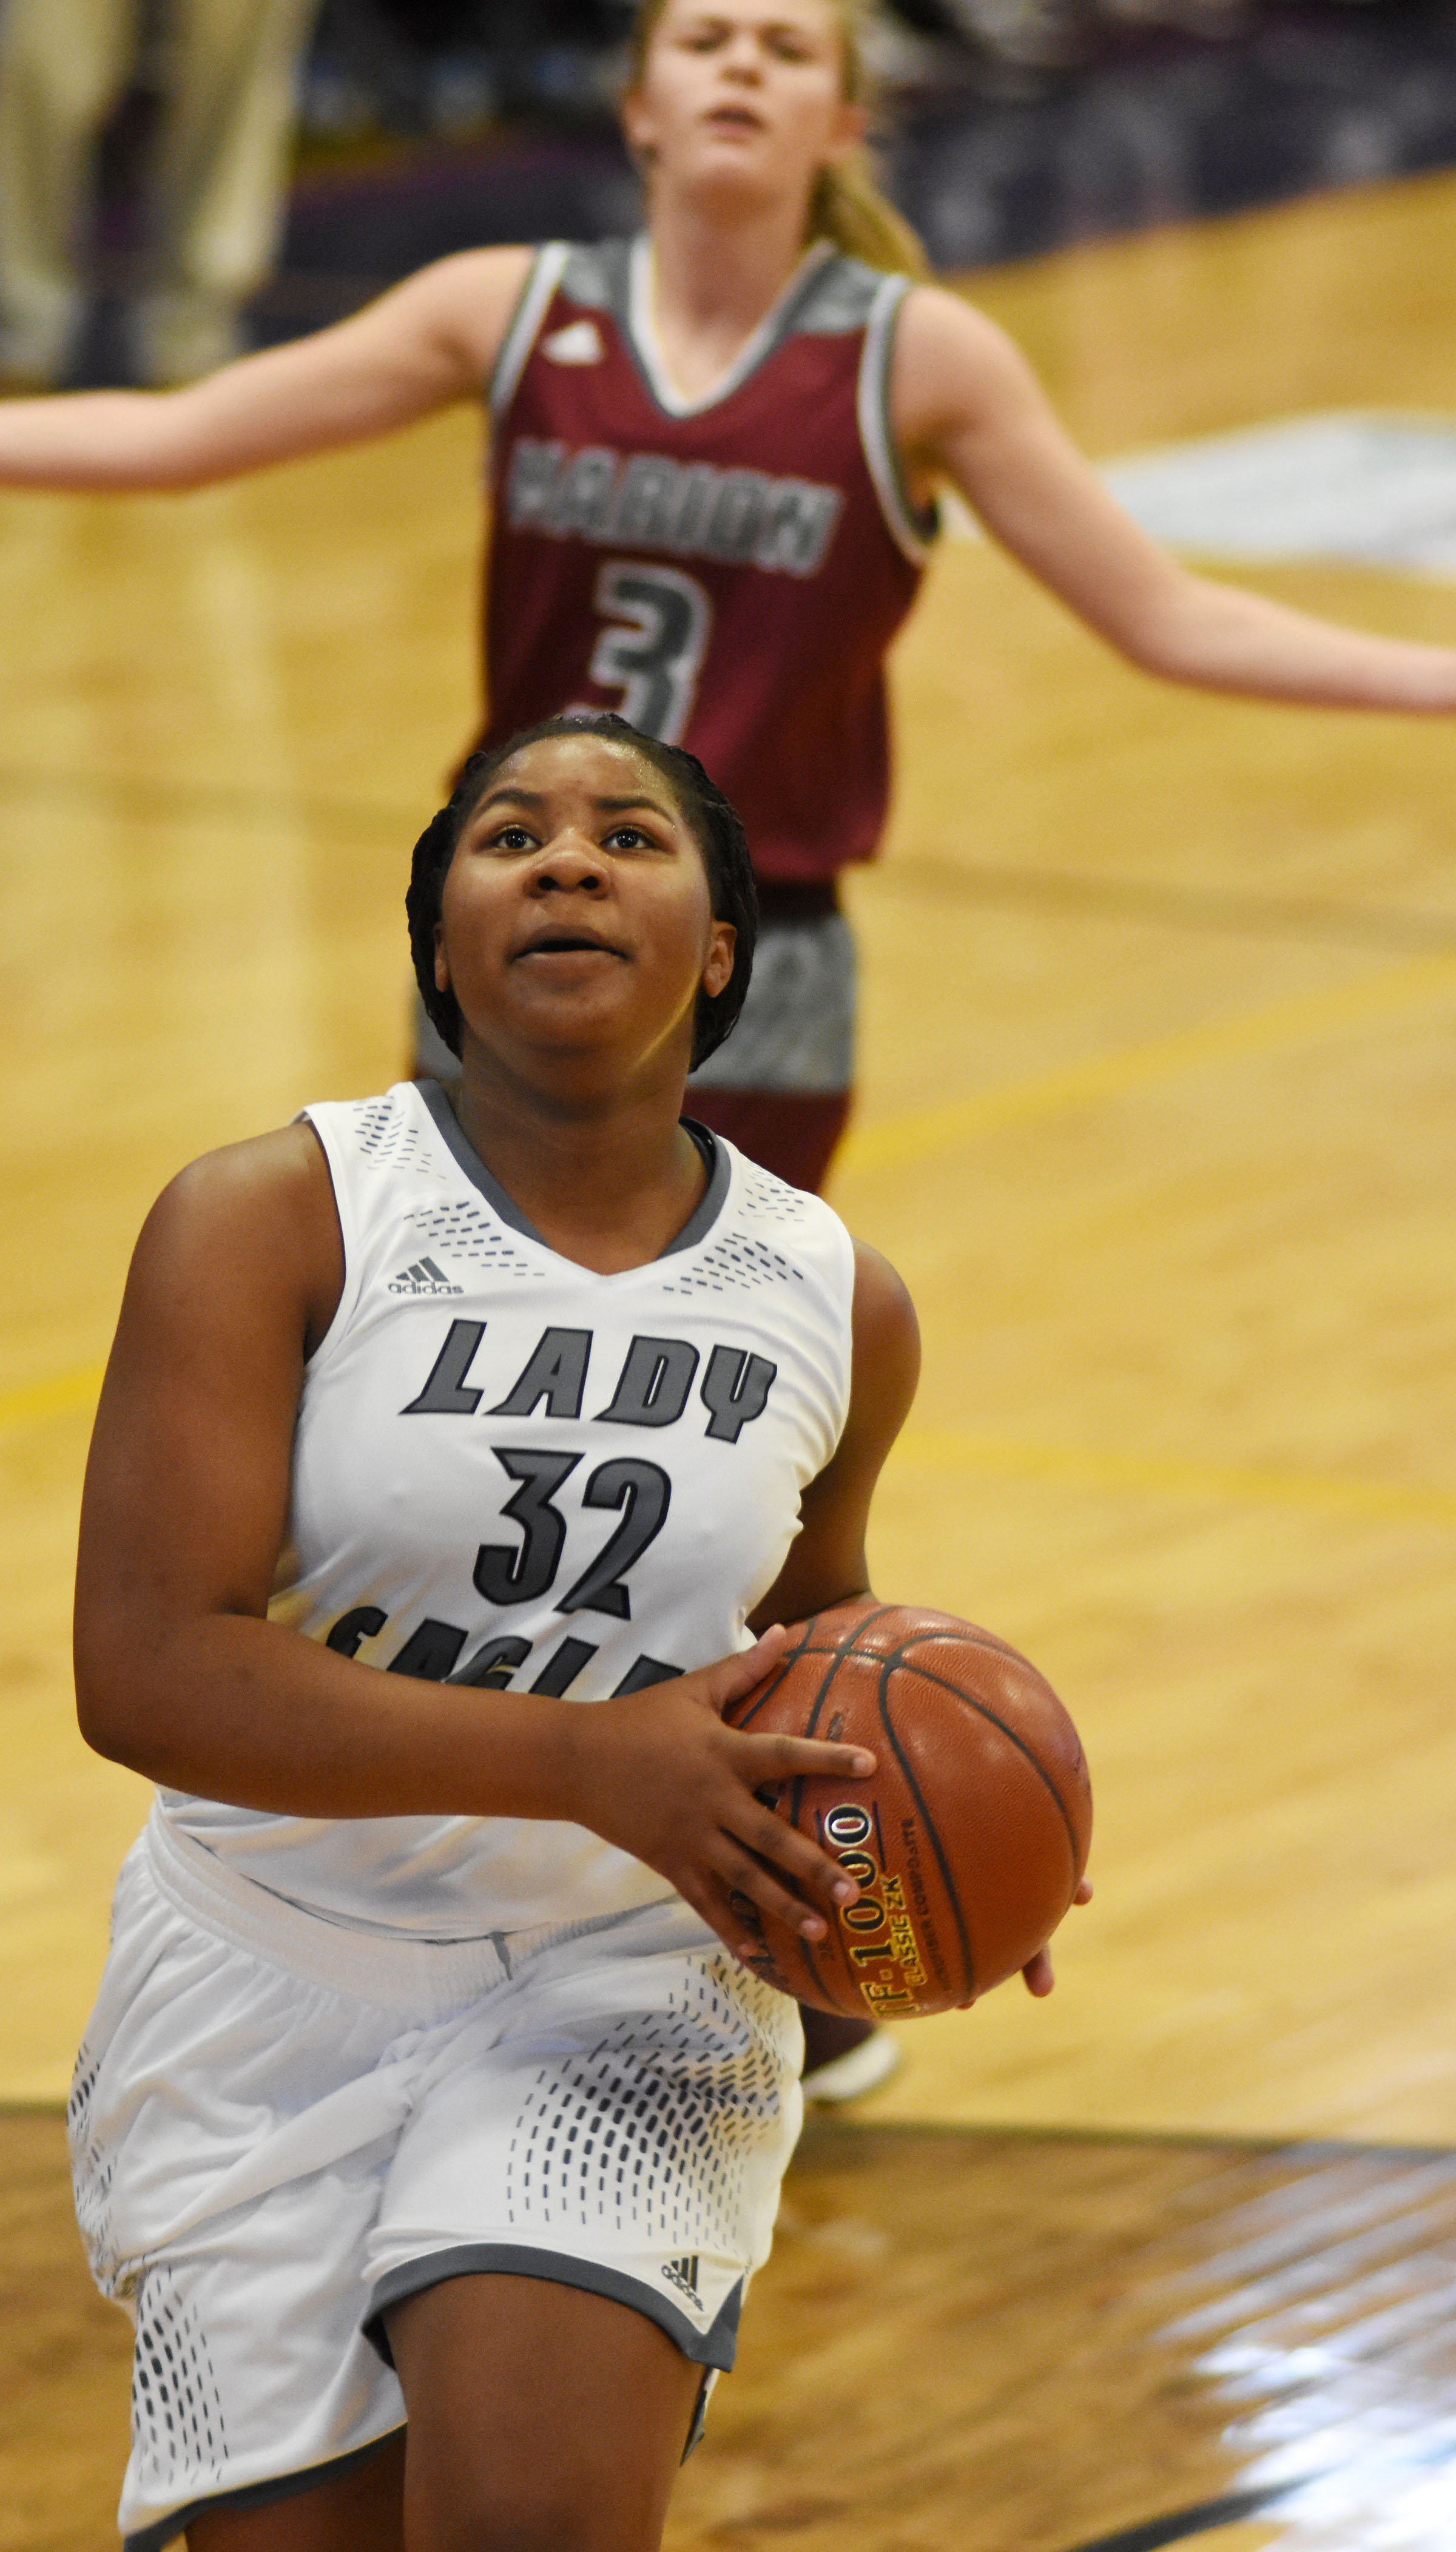 CHS senior Nena Barnett scores two points.